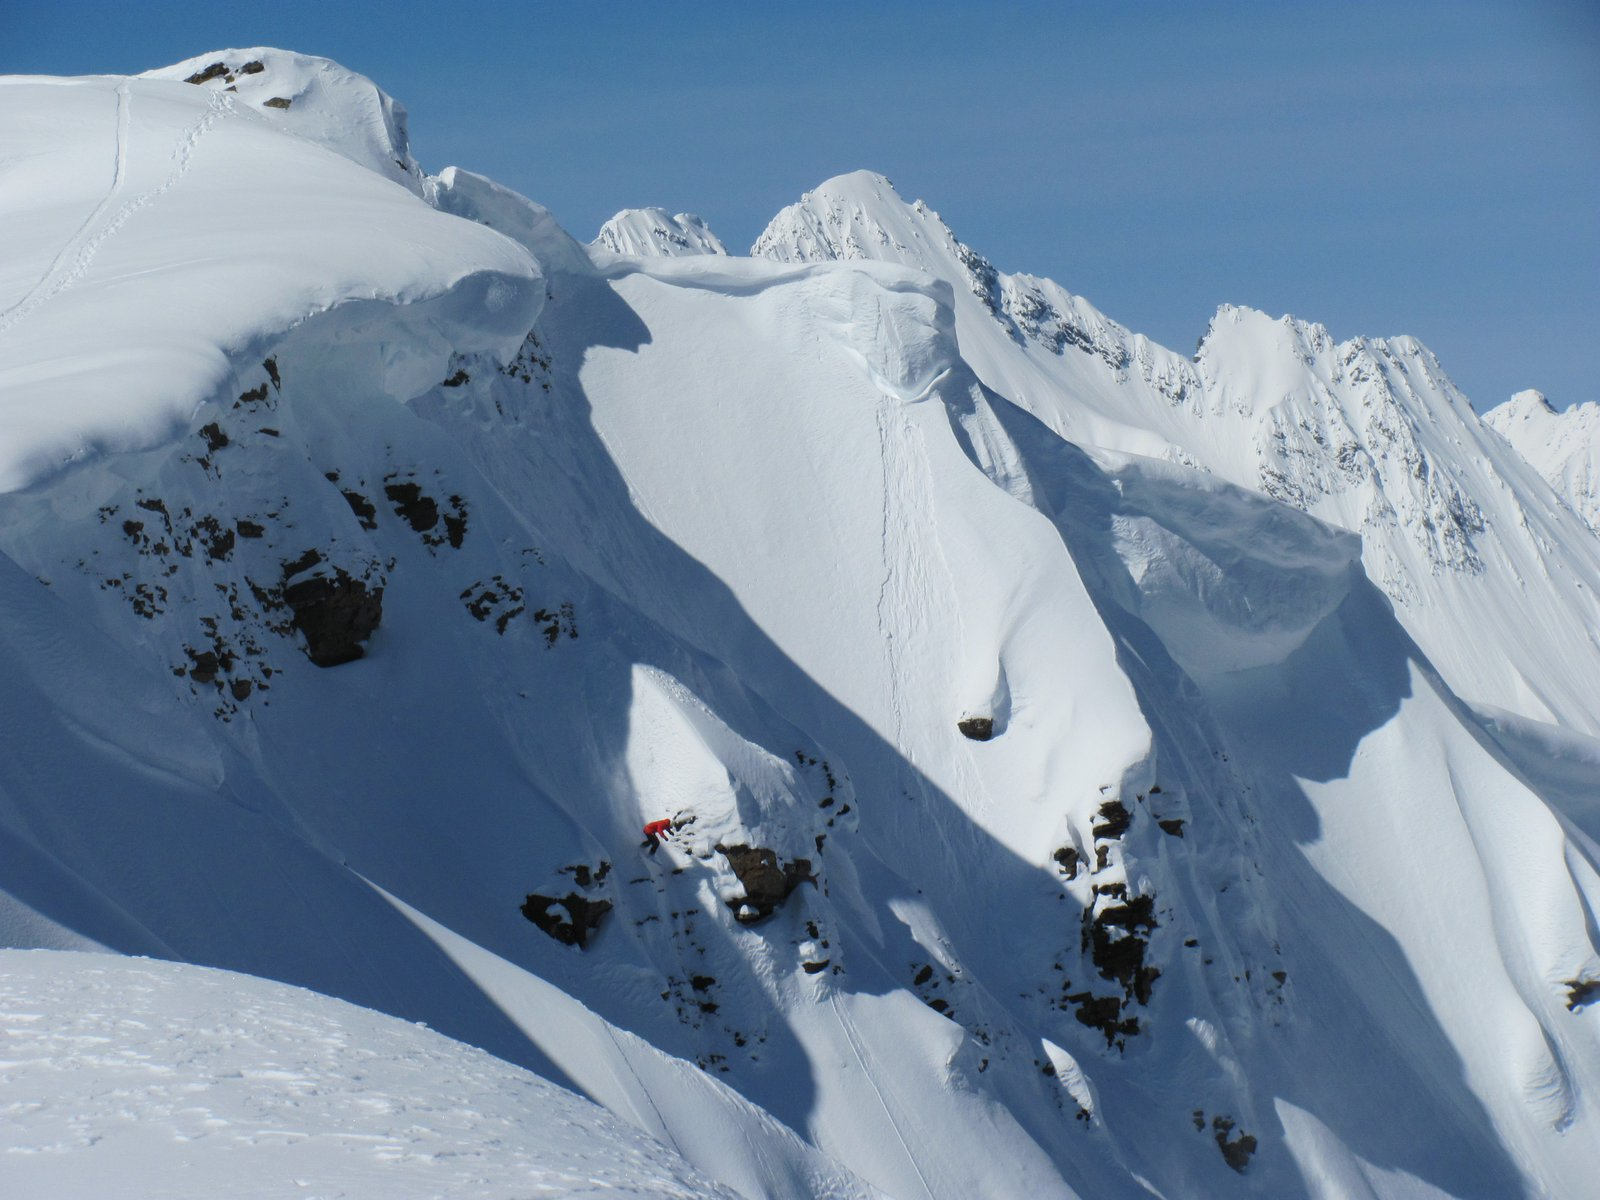 Stellar Heli Skiing april 9 2011